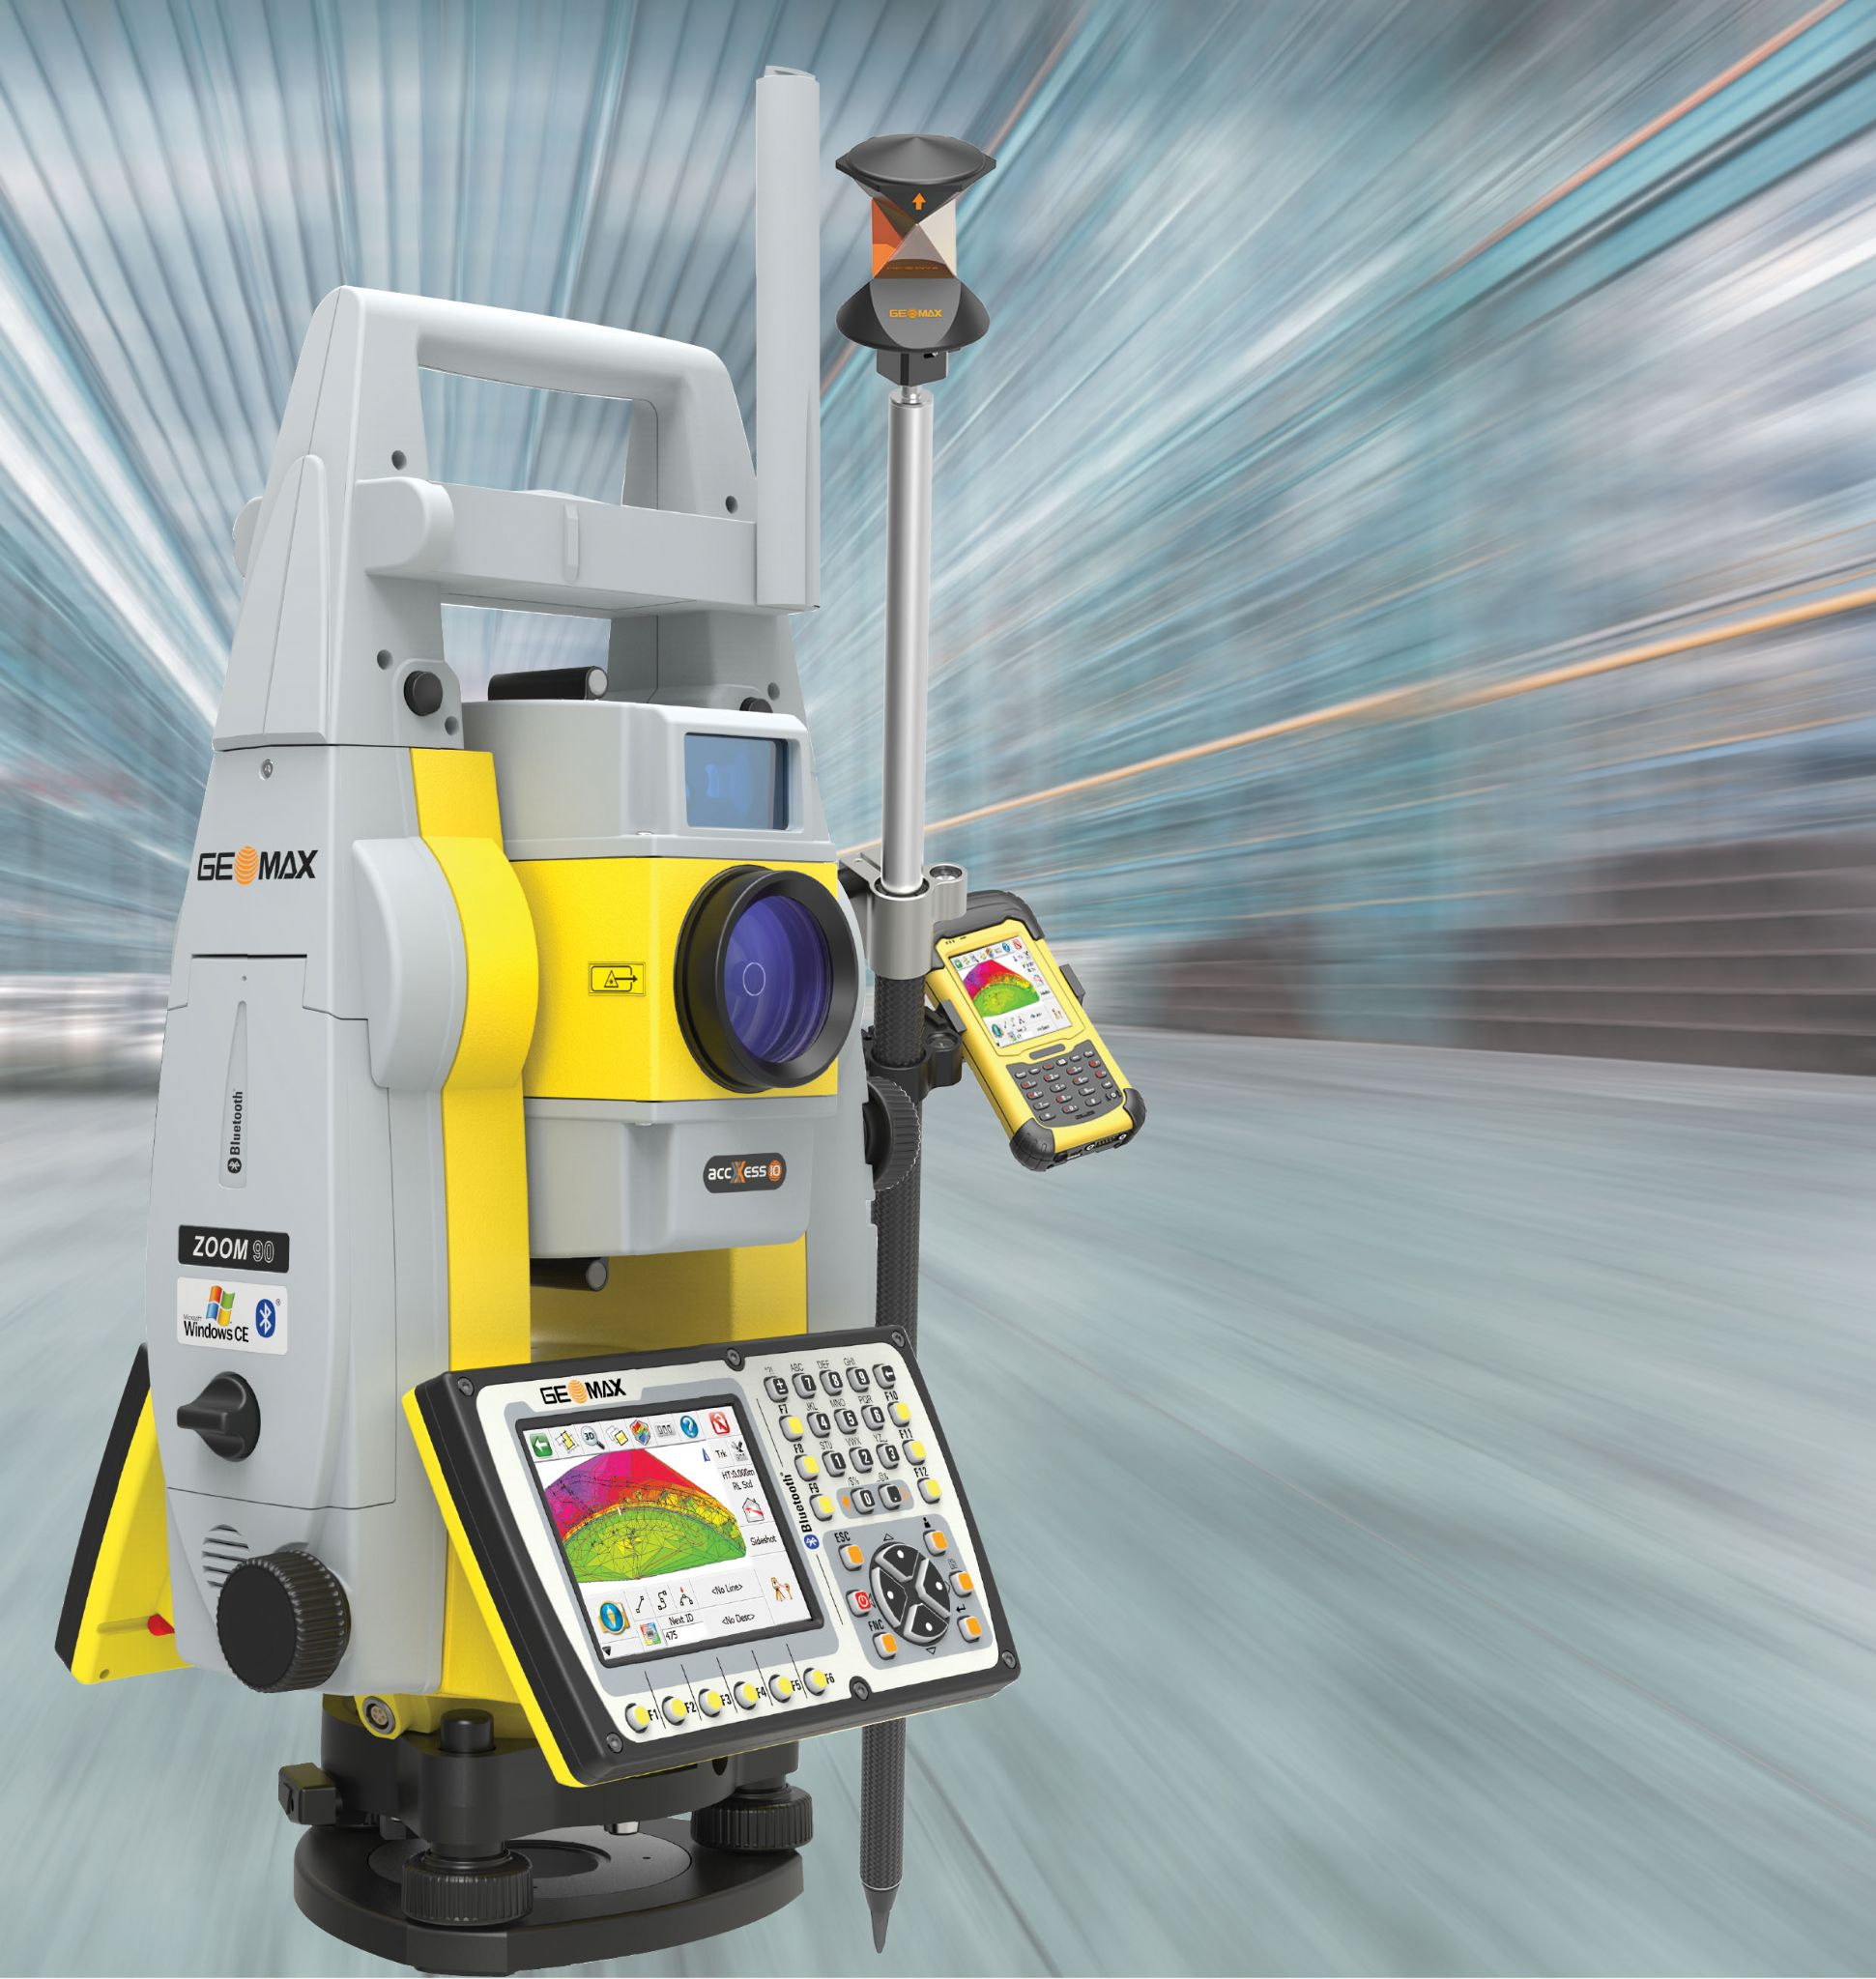 geomax zoom 90 r1000 a10 5 robotik total station paket android panasonic fz b2 geo science sa. Black Bedroom Furniture Sets. Home Design Ideas